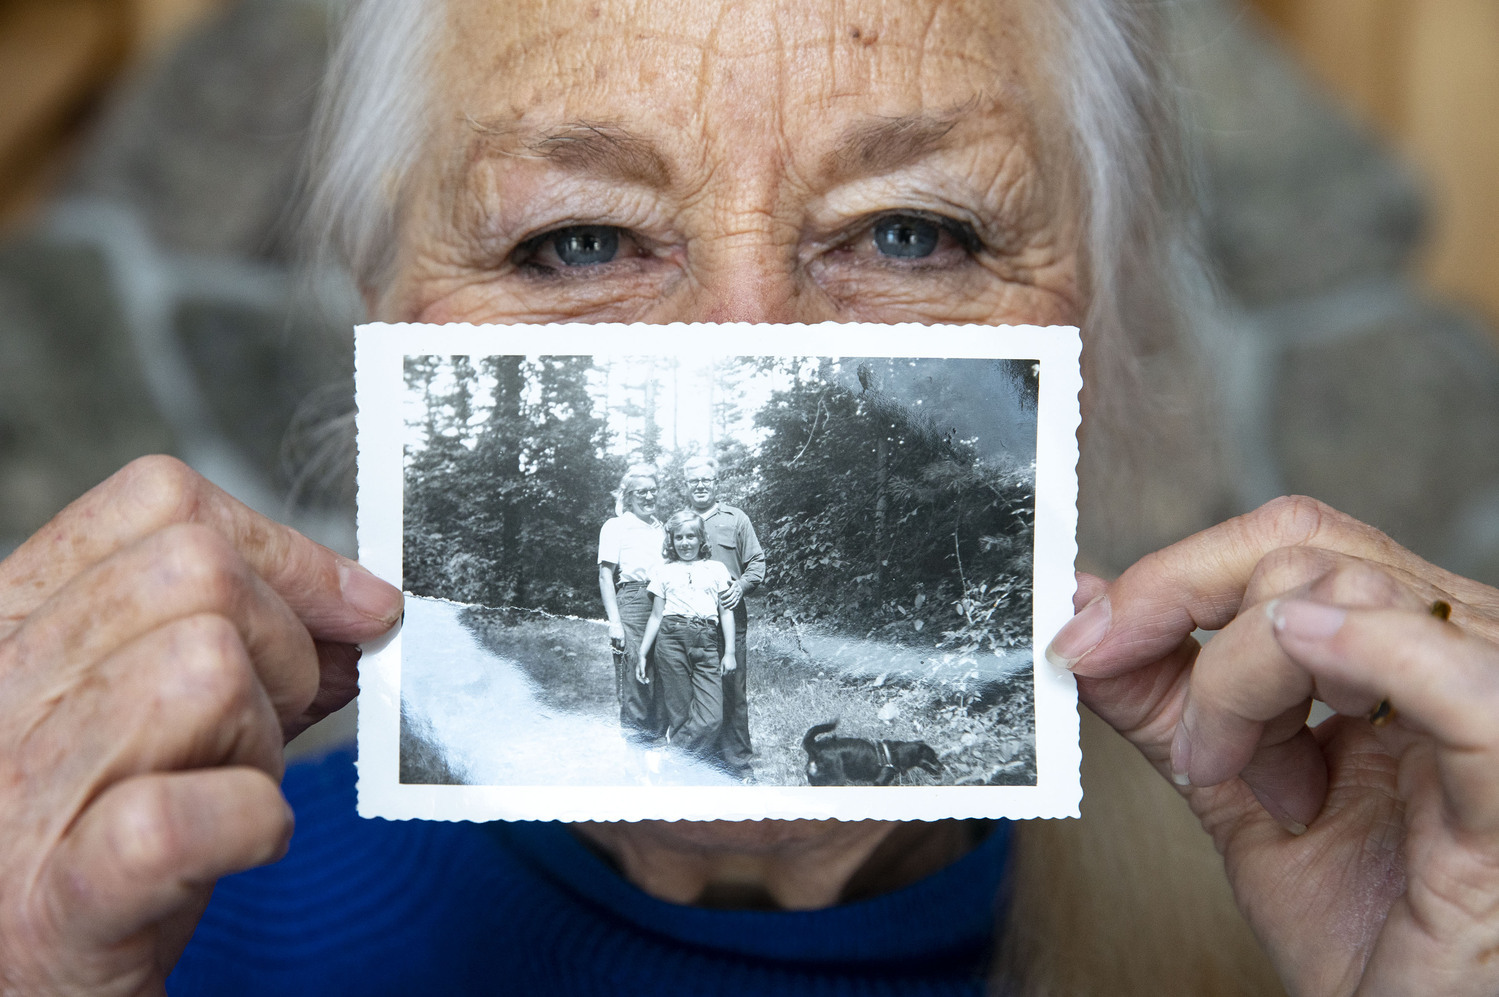 Joyce Leddy showed a picture of herself, top, as a young girl with her parents during a visit to the Gunflint region.